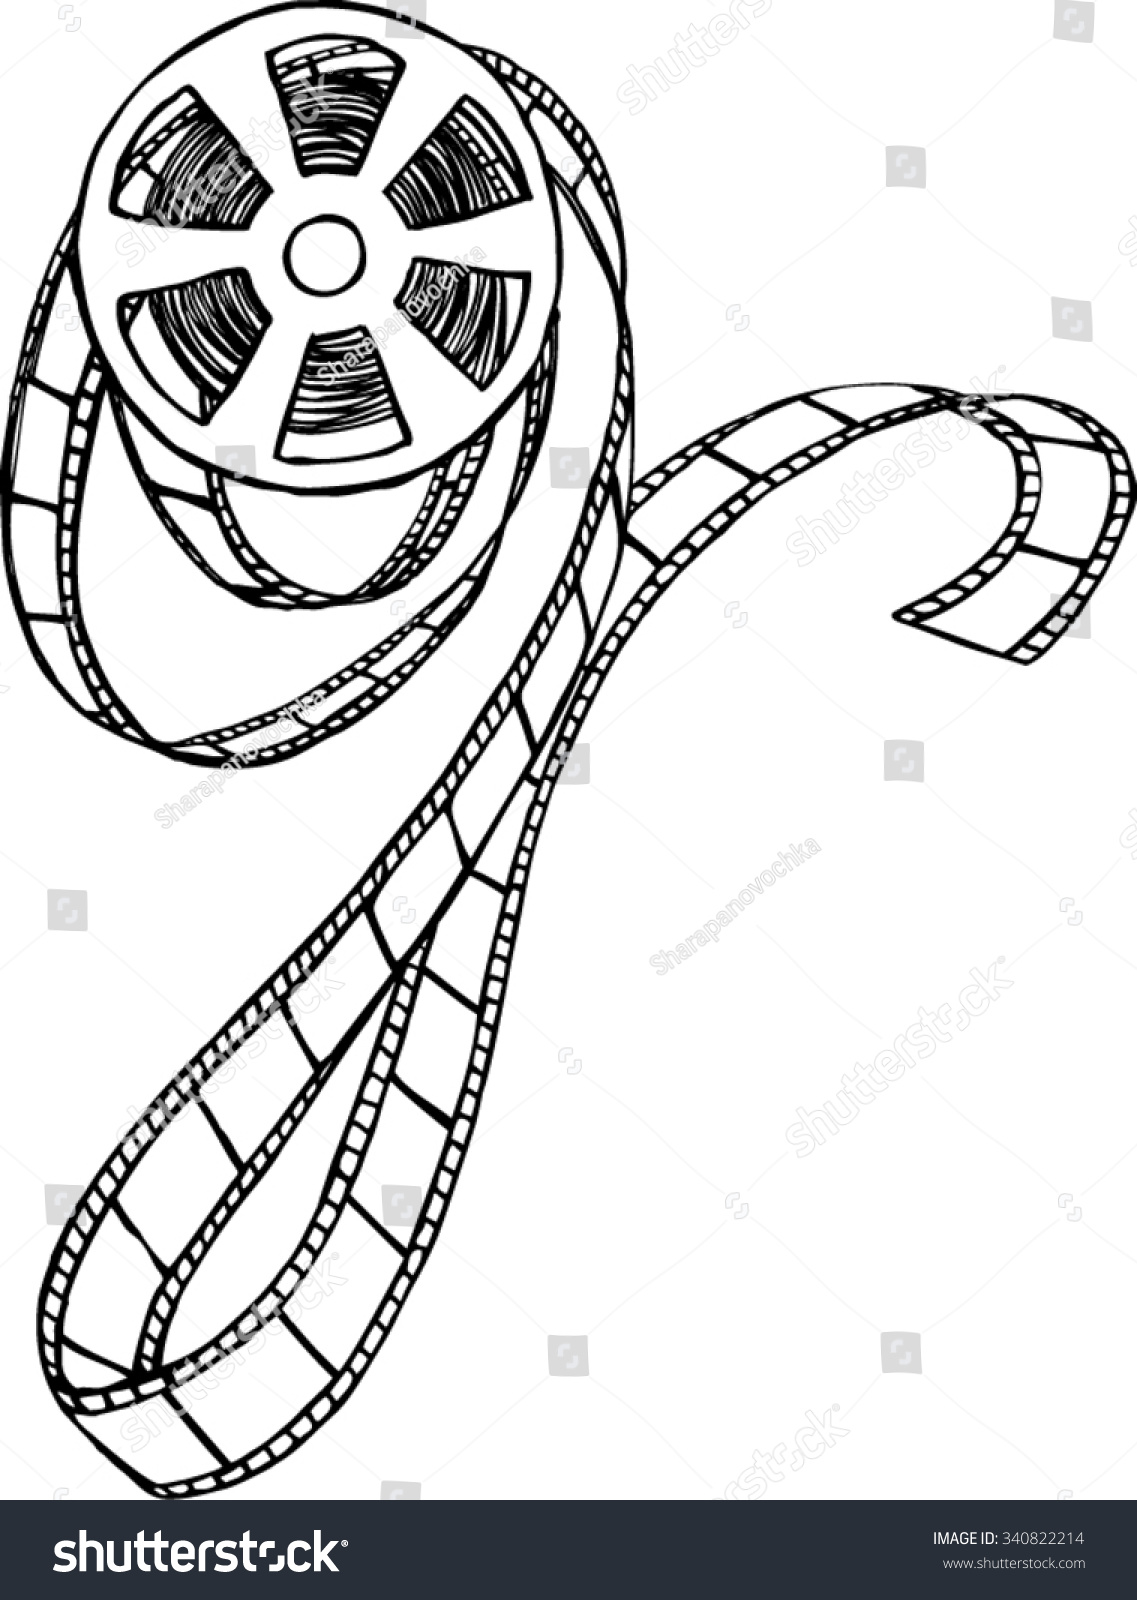 Movie Reel Clipart Black And White